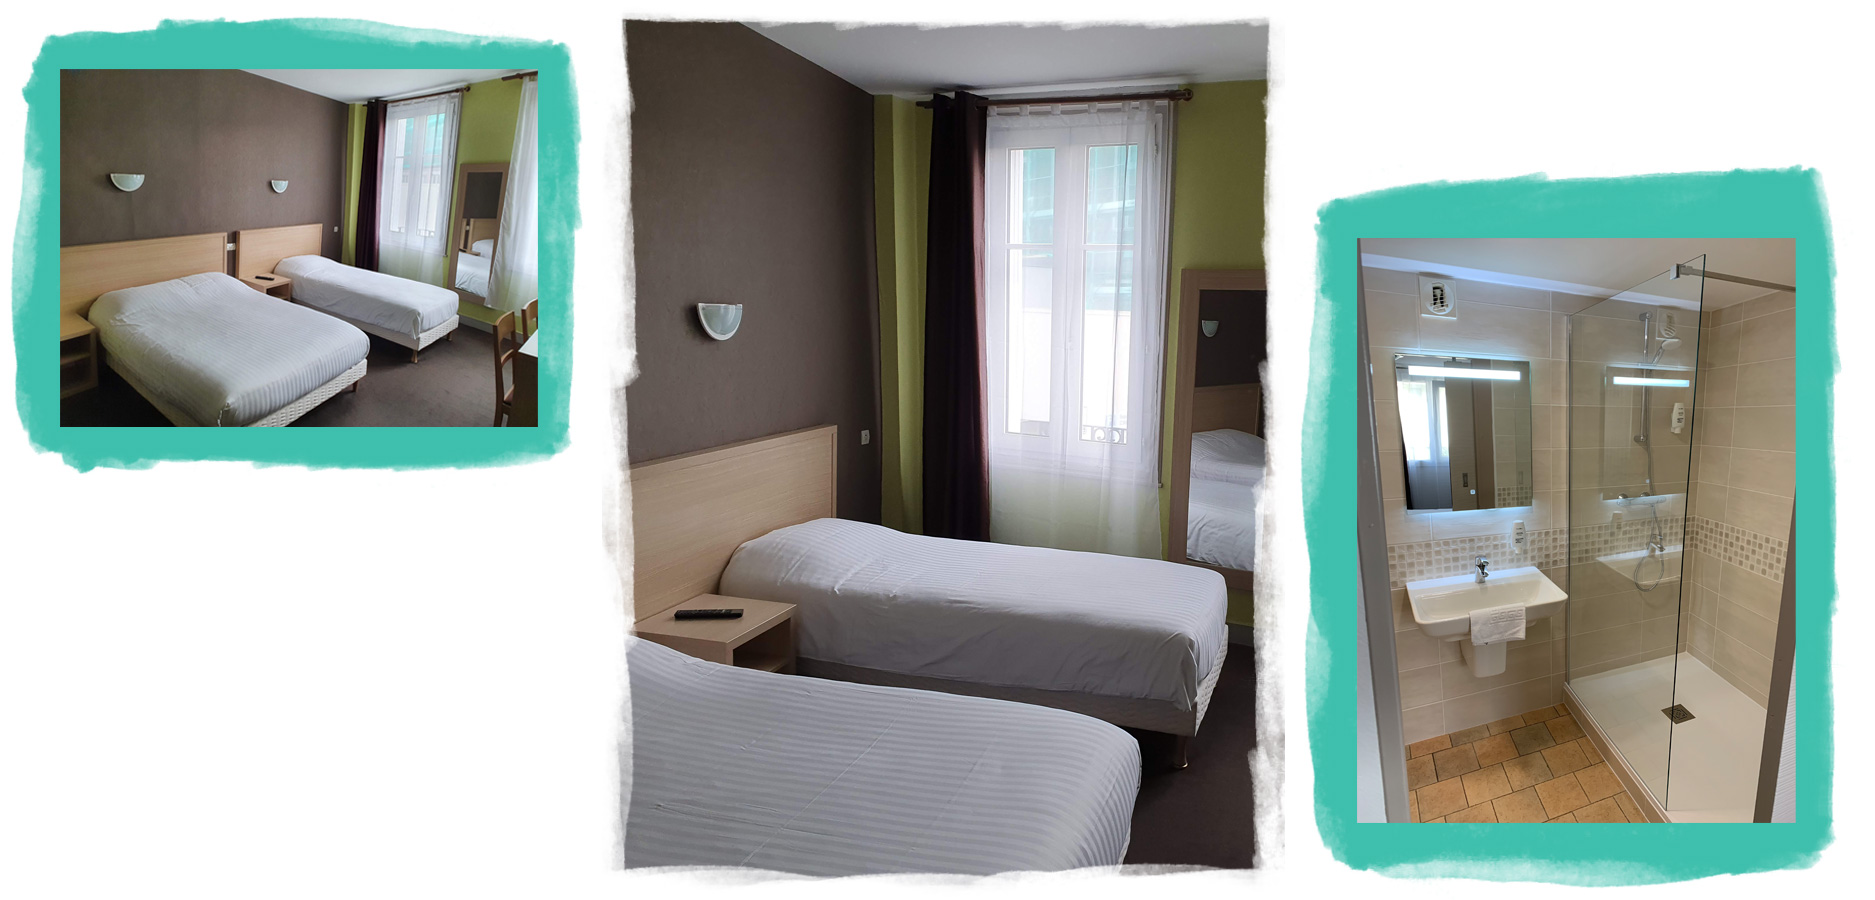 View of a warm room with a double bed and a single bed